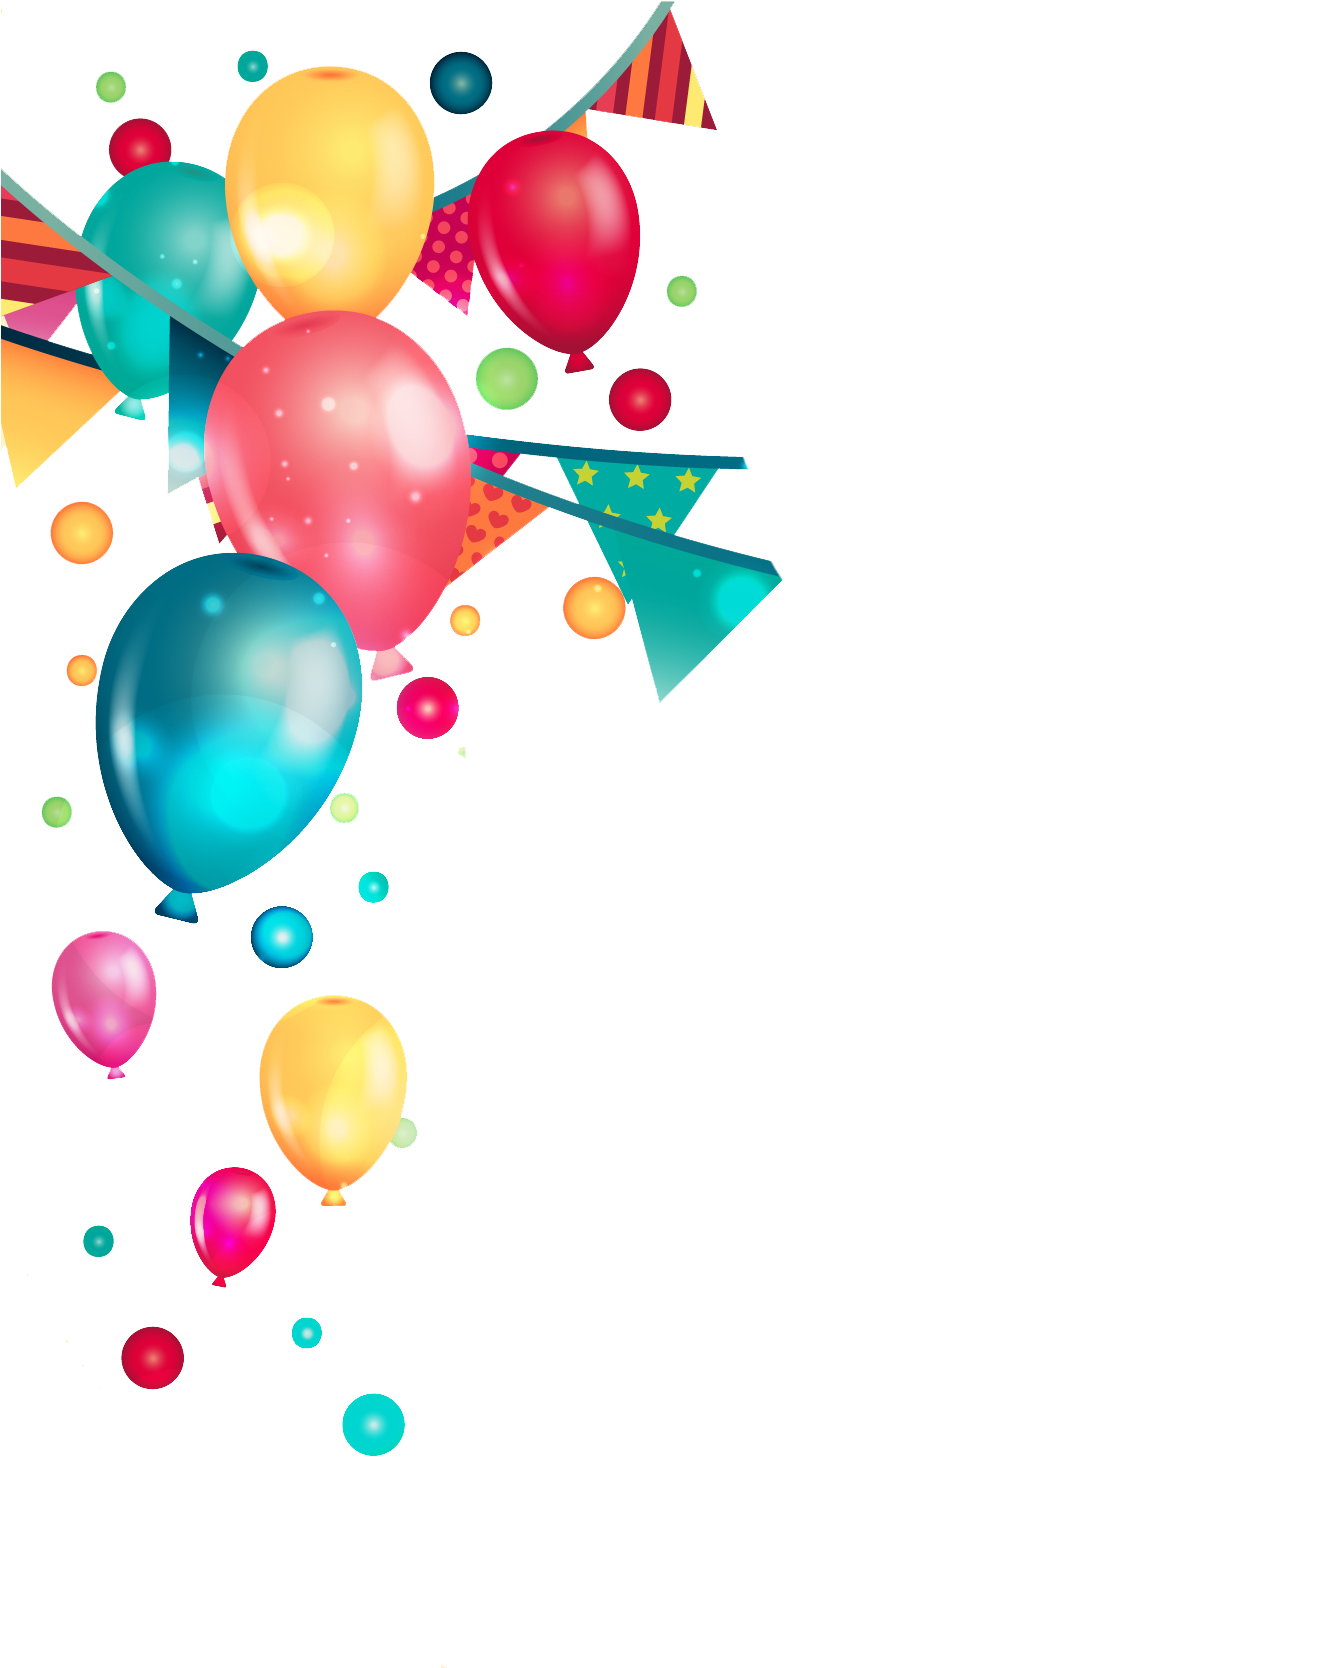 Celebration clipart clear background. Hd birthday party balloons